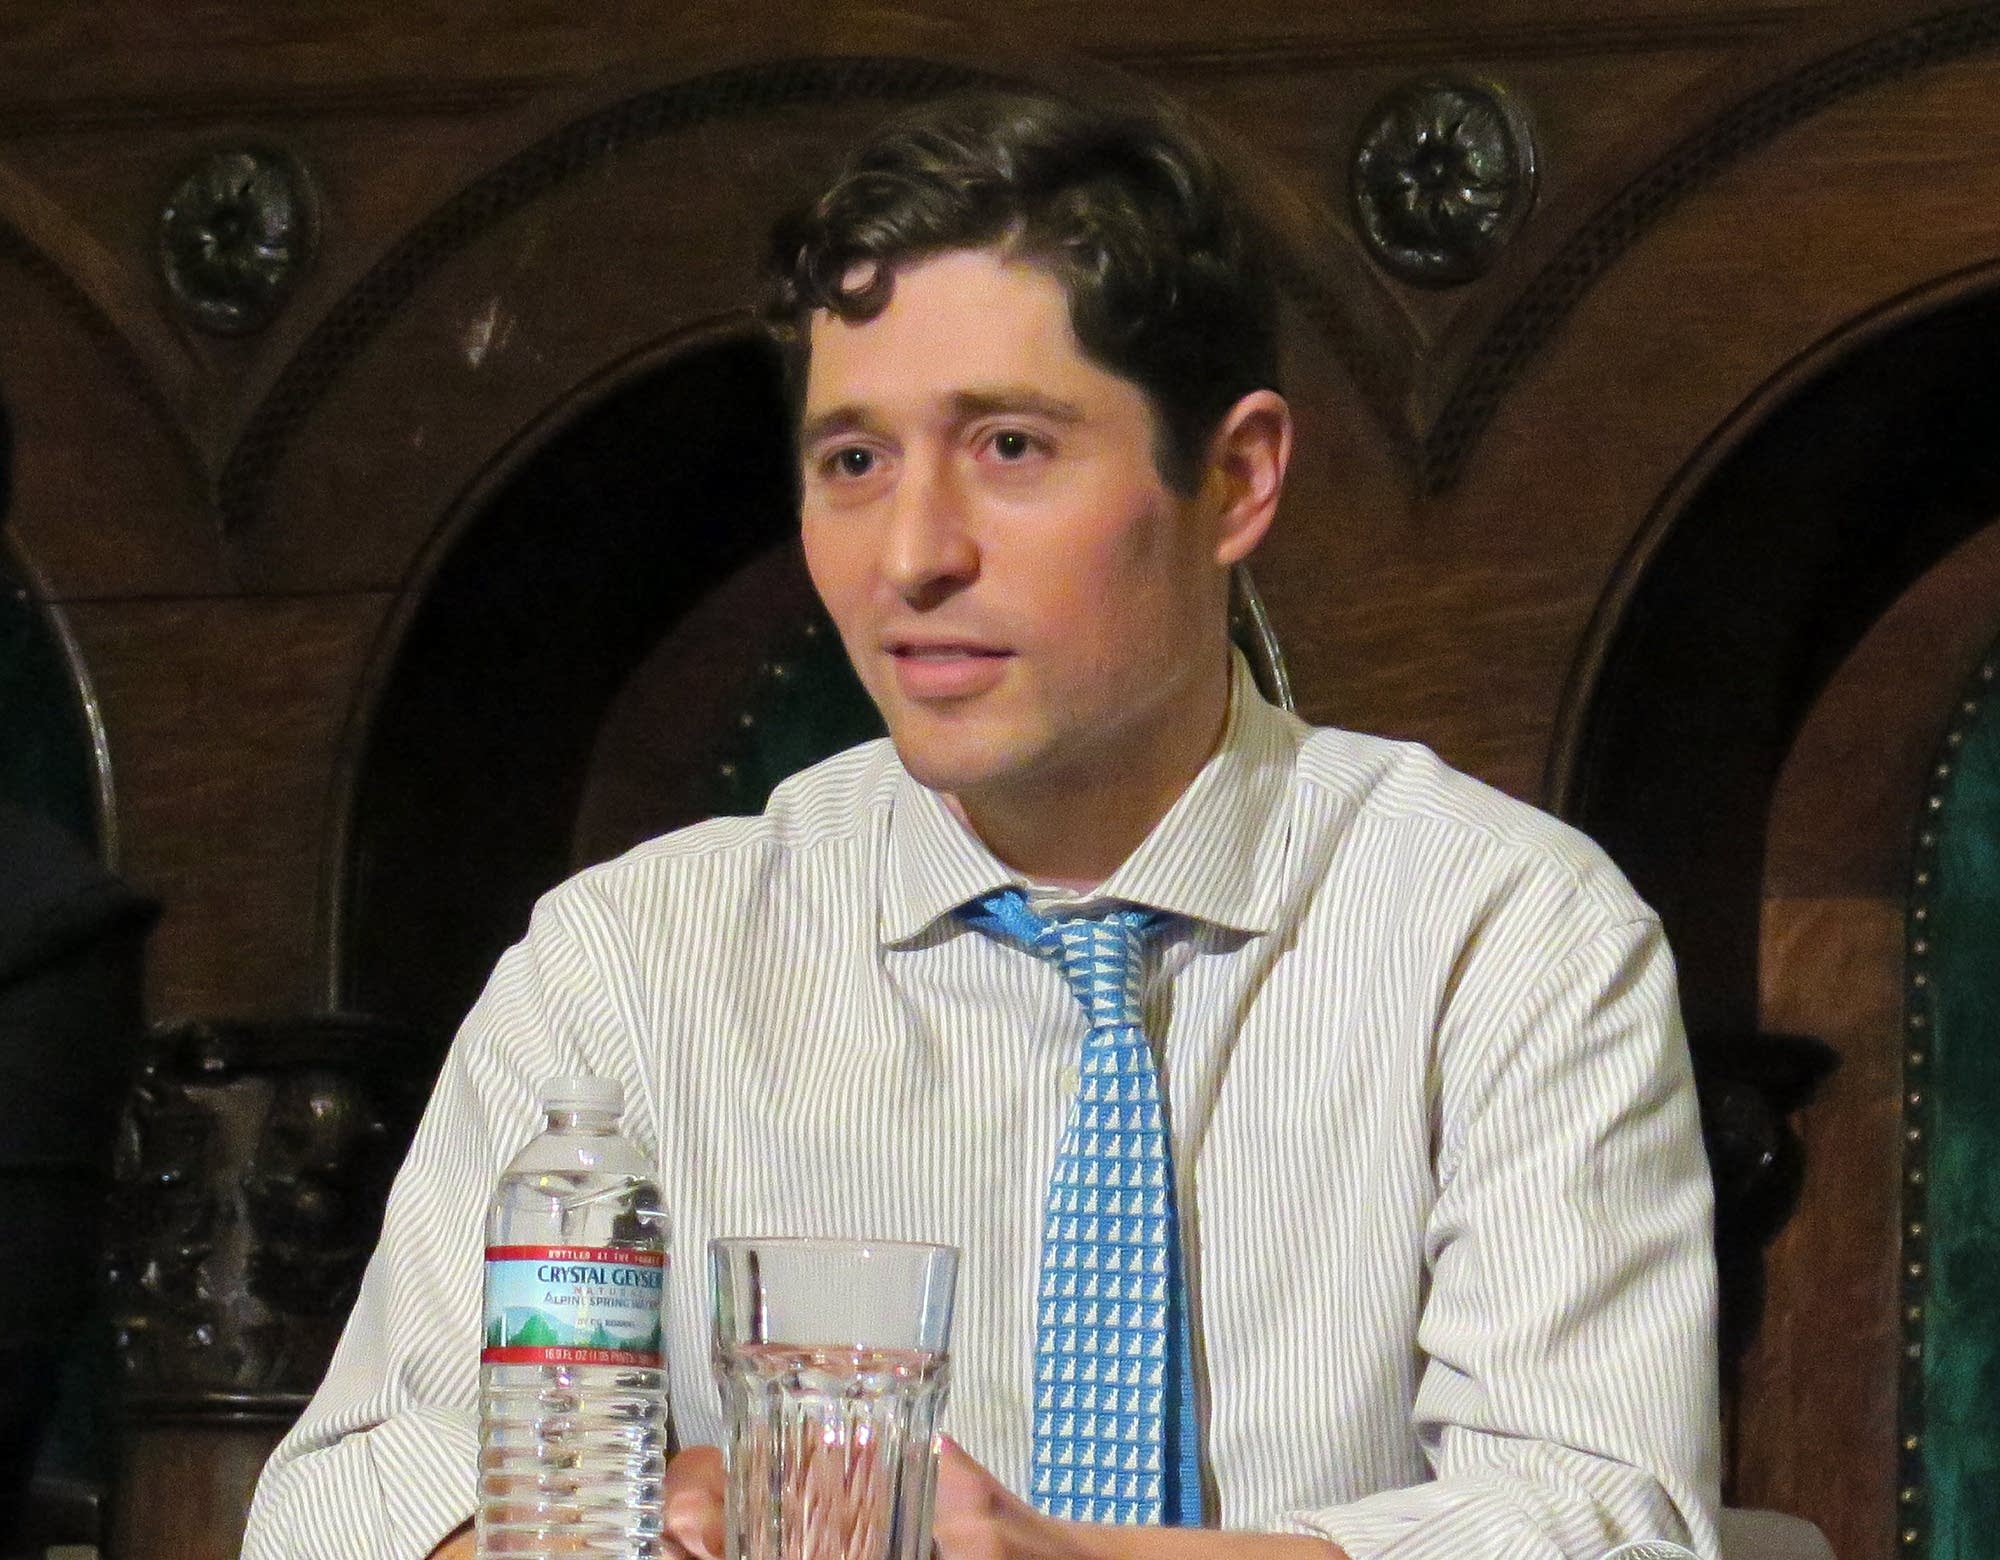 City council member Jacob Frey